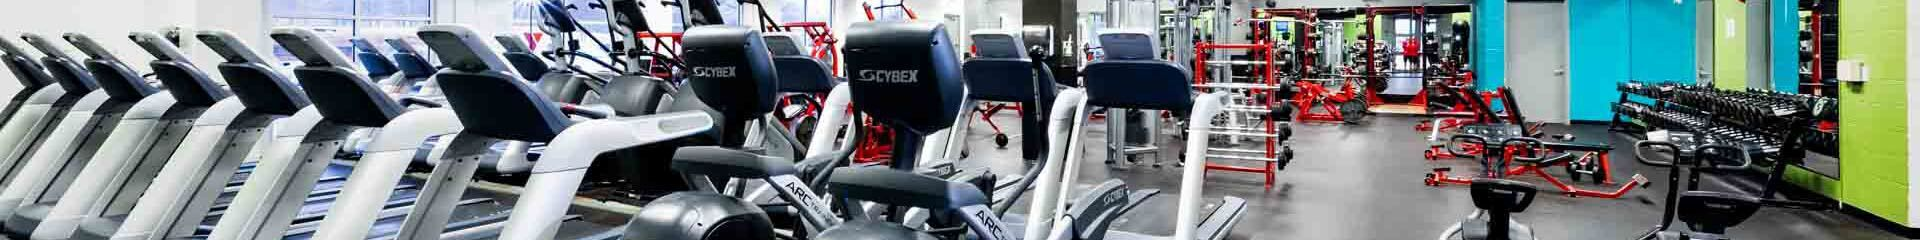 Treadmills and dumbbells in a gym